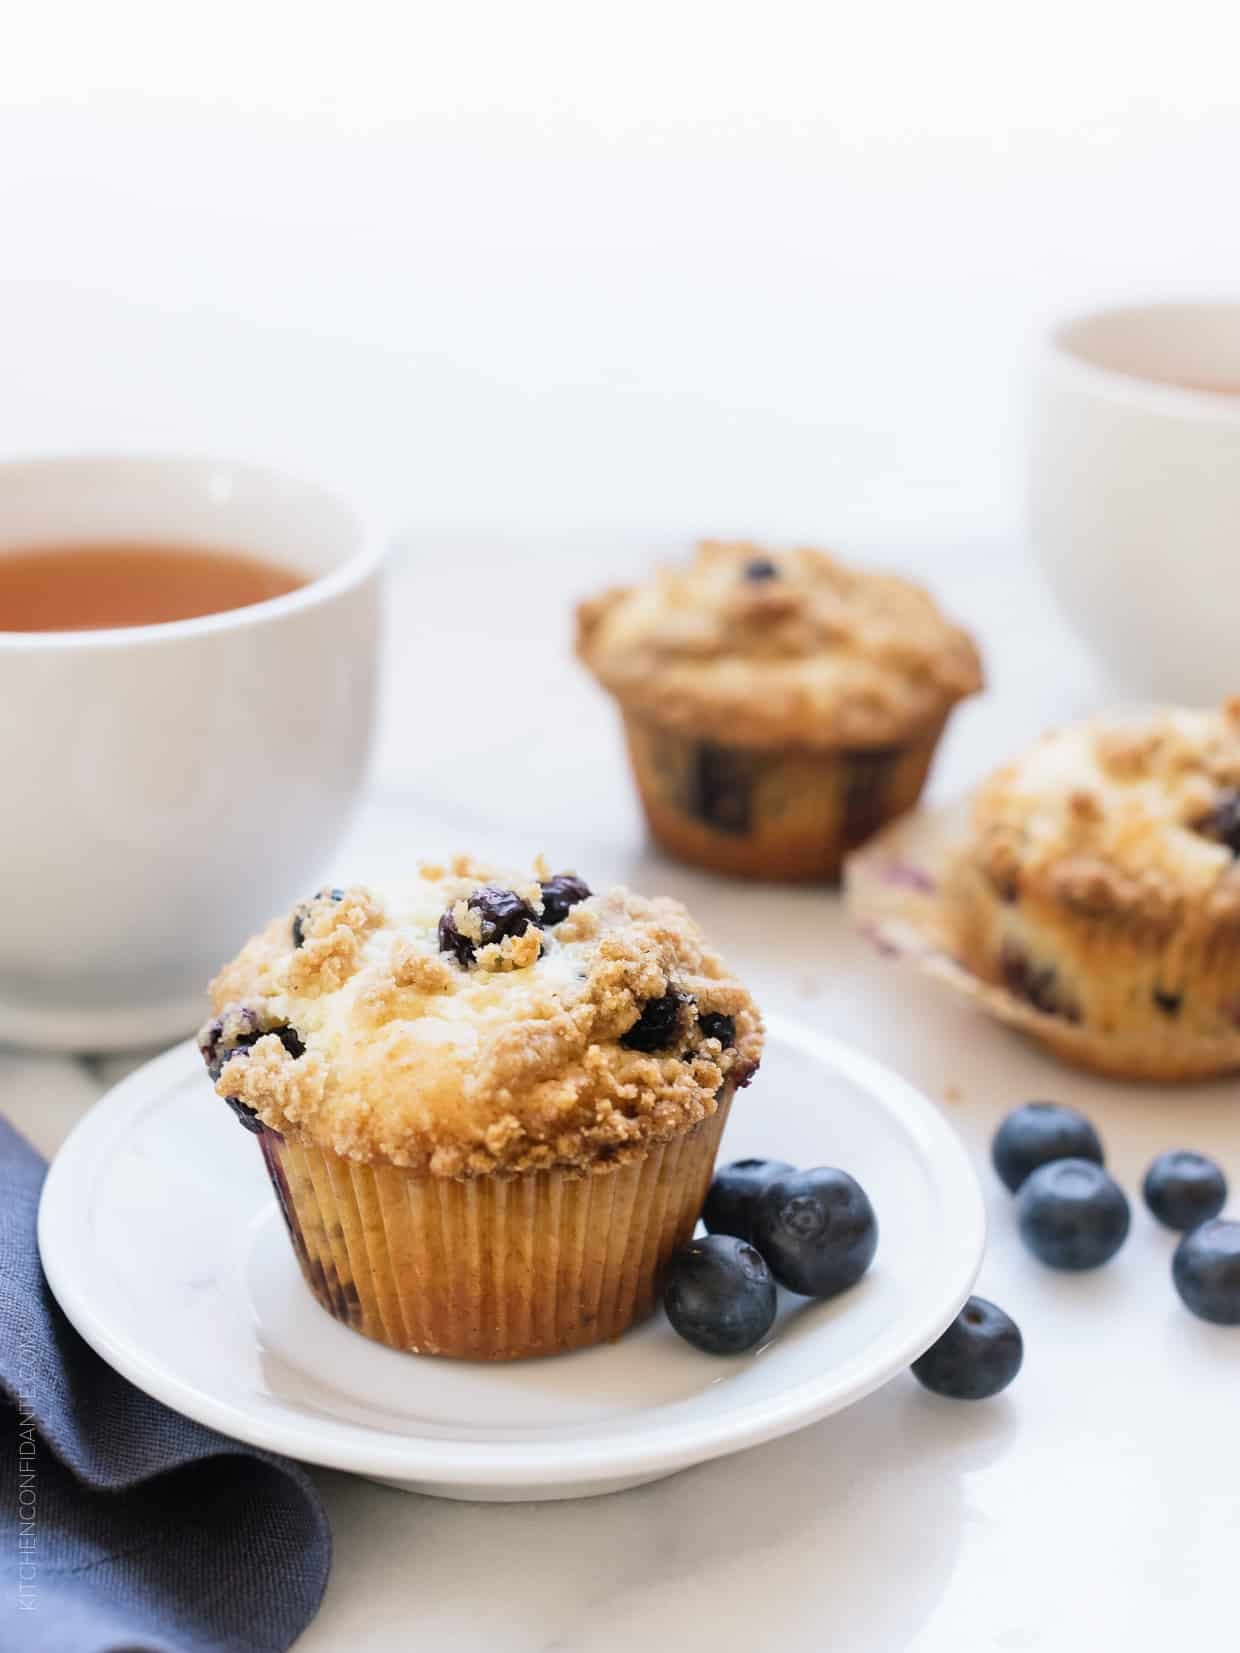 Bakery Style Buttermilk Blueberry Muffins served with a cup of tea in the background and fresh blueberries on the side.